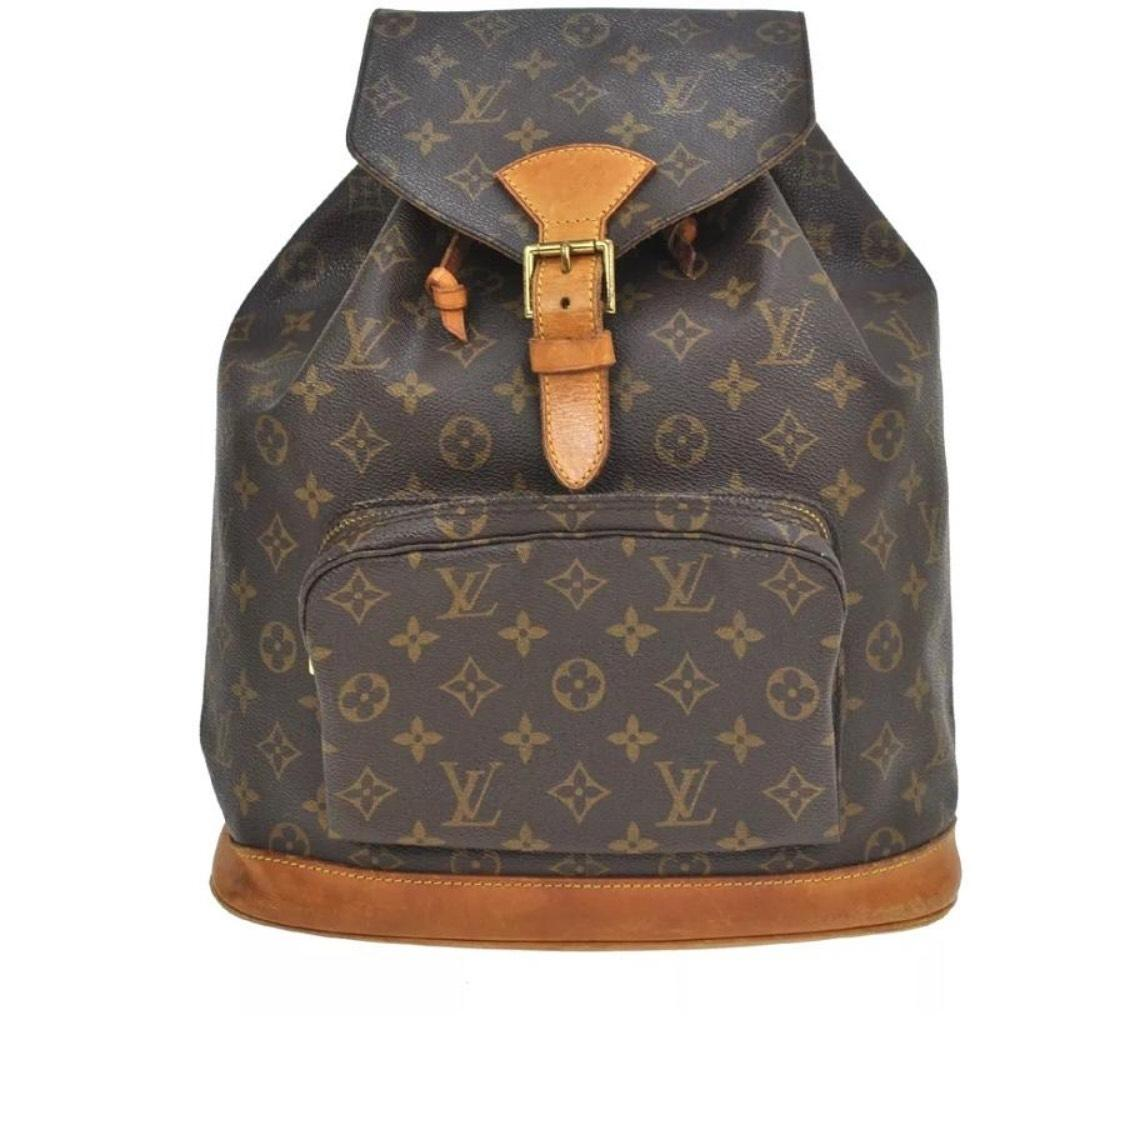 Louis Vuitton Backpacks - Up to 70% off at Tradesy